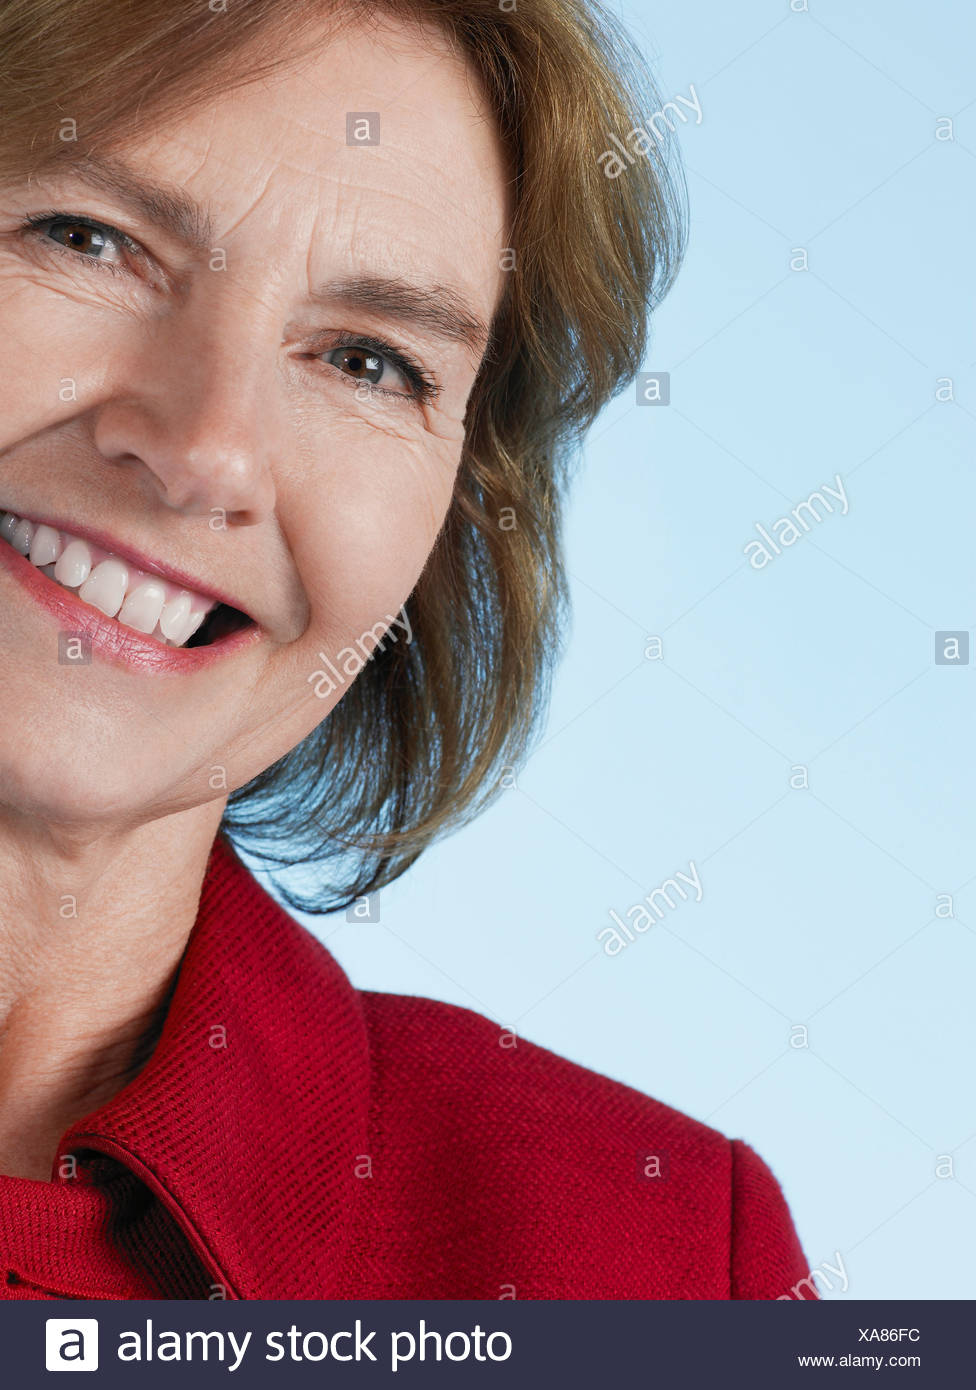 Middle-aged woman smiling, close-up Photo Stock